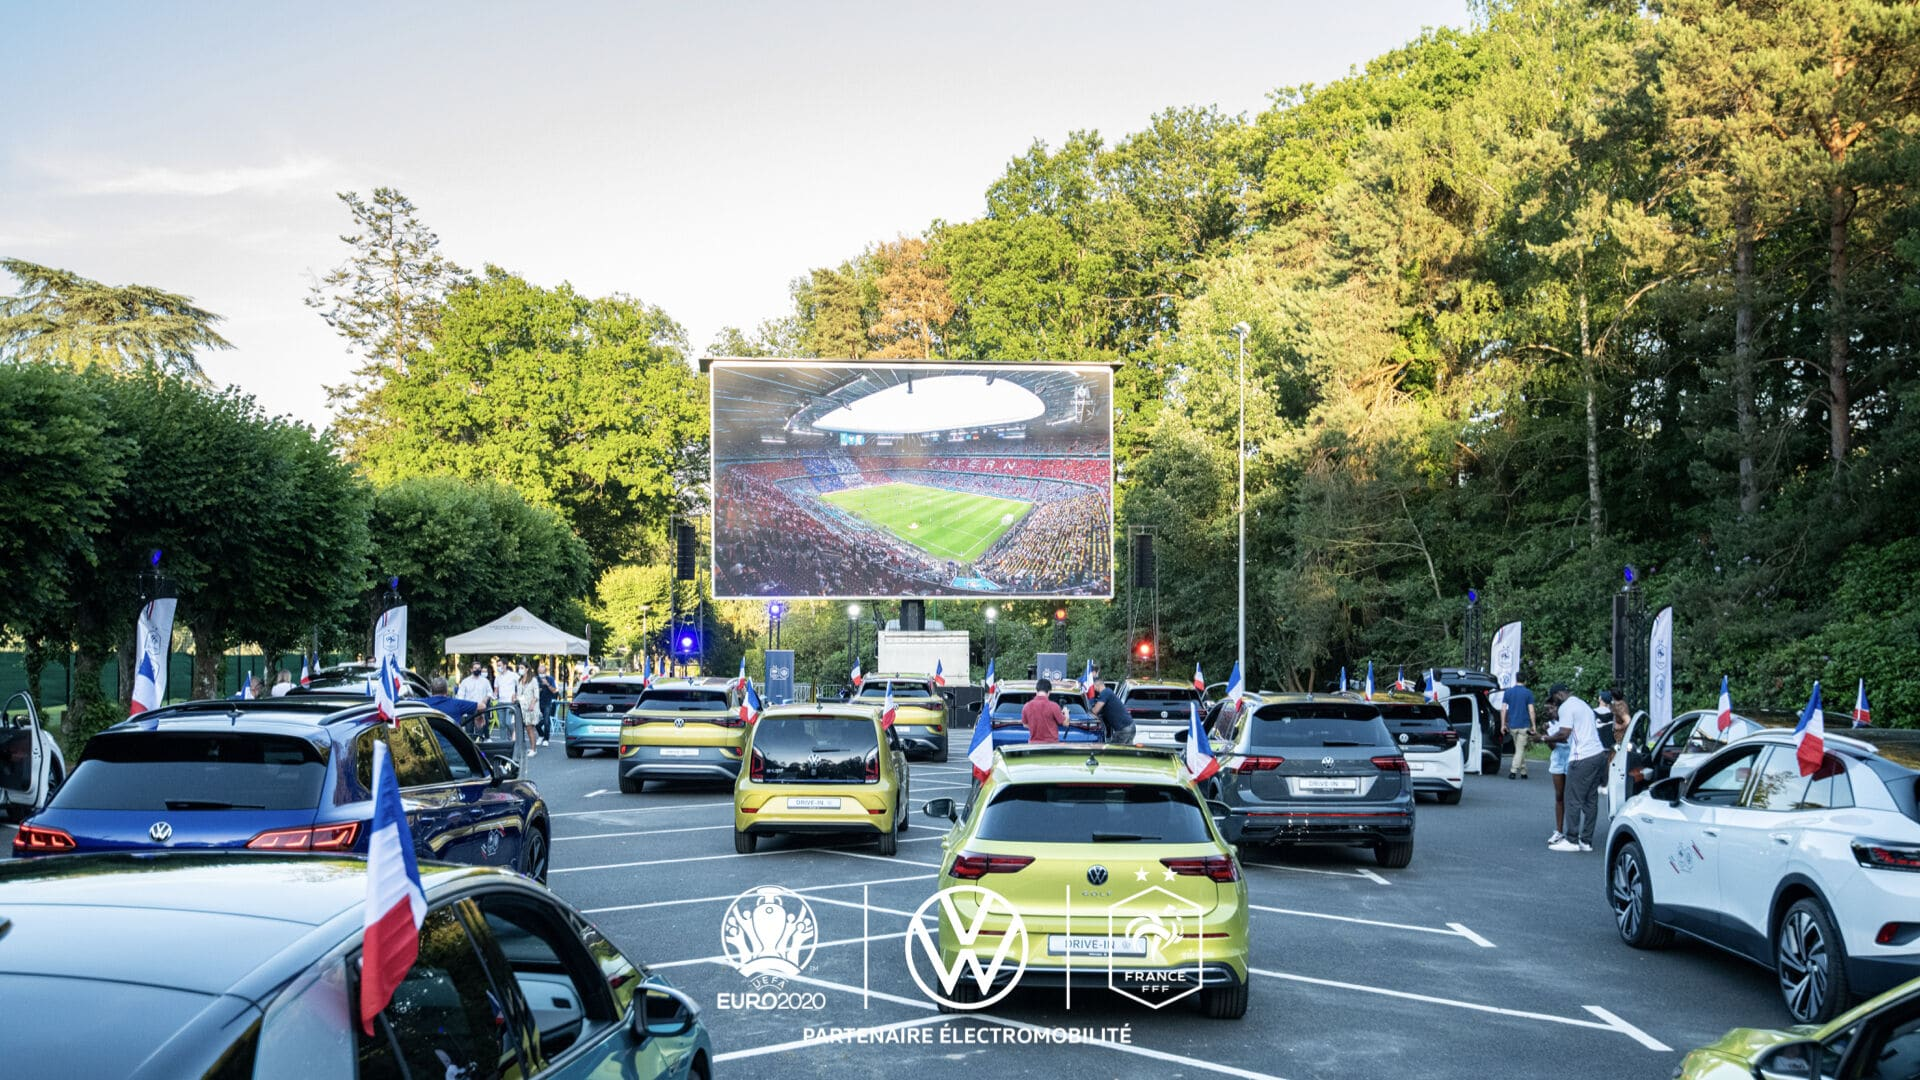 drive-in-volkswagen-france-clairefontaine-euro2020